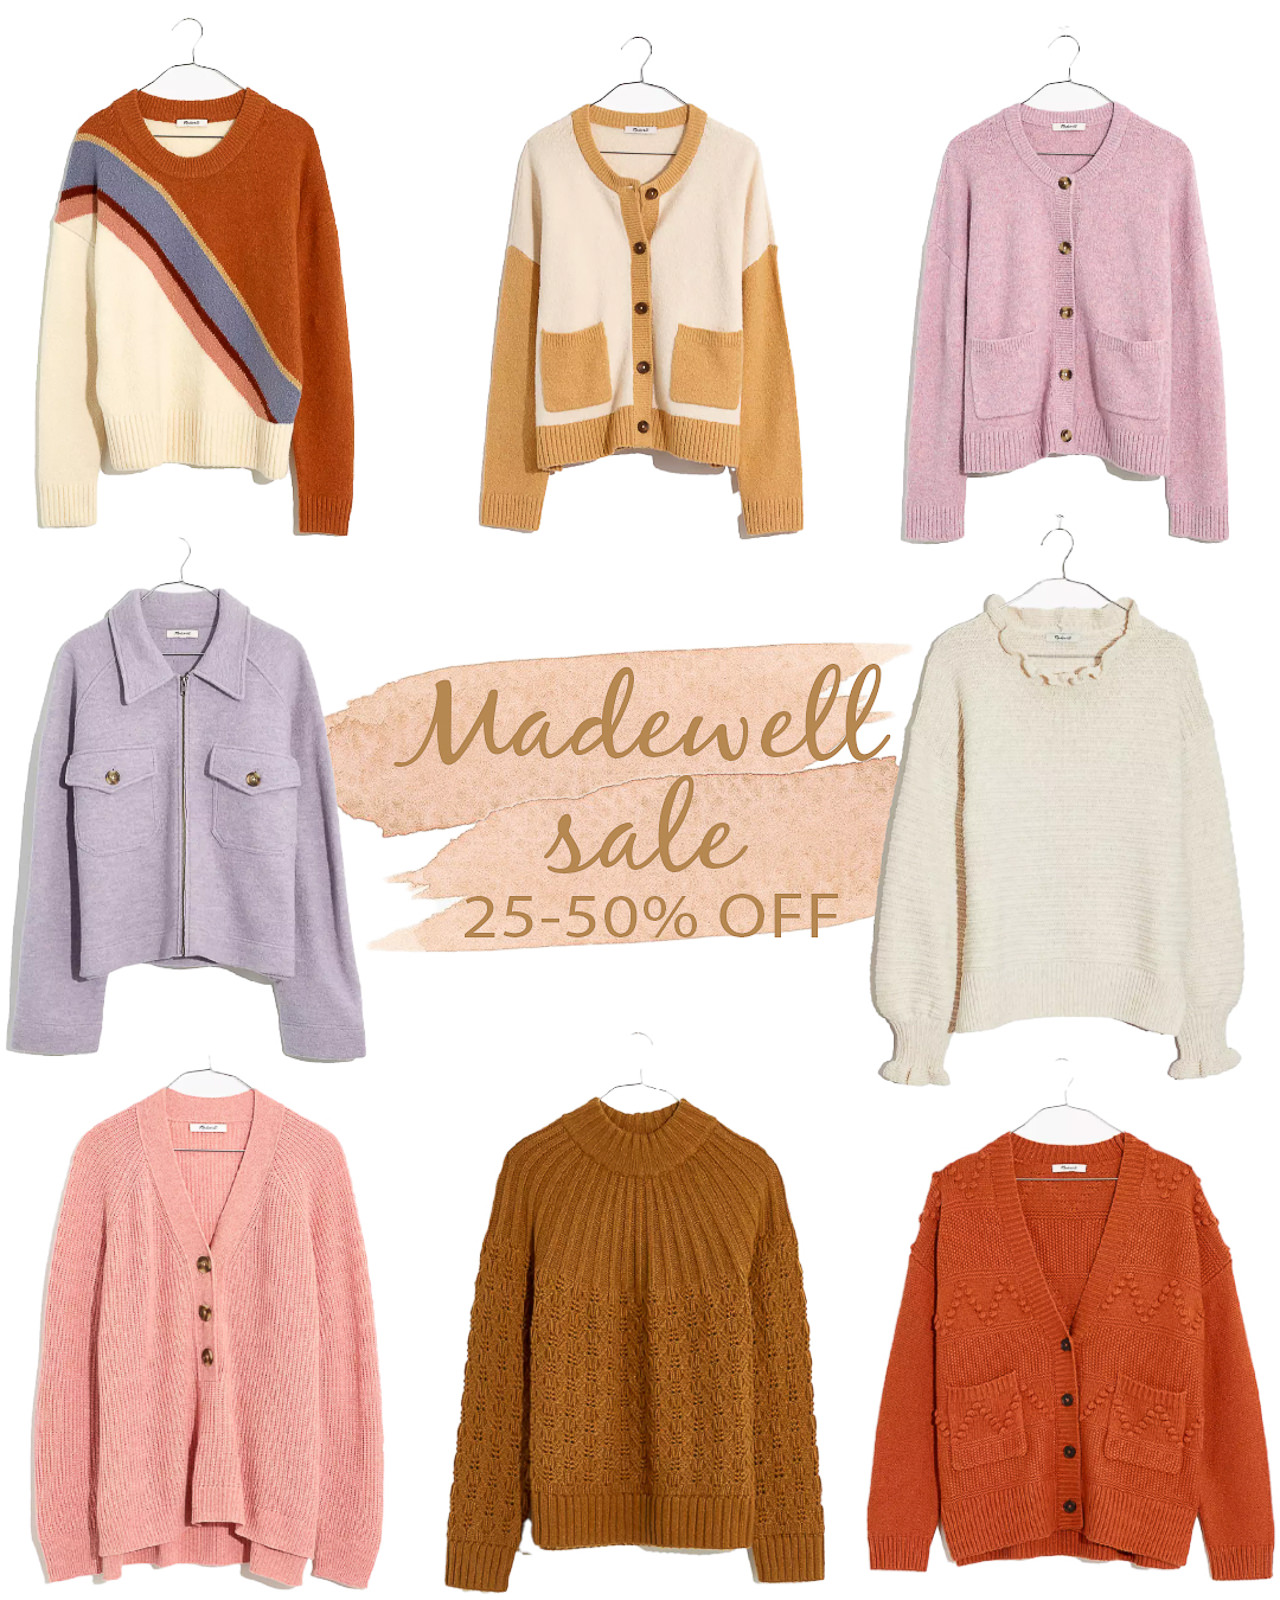 madewell sale sweaters